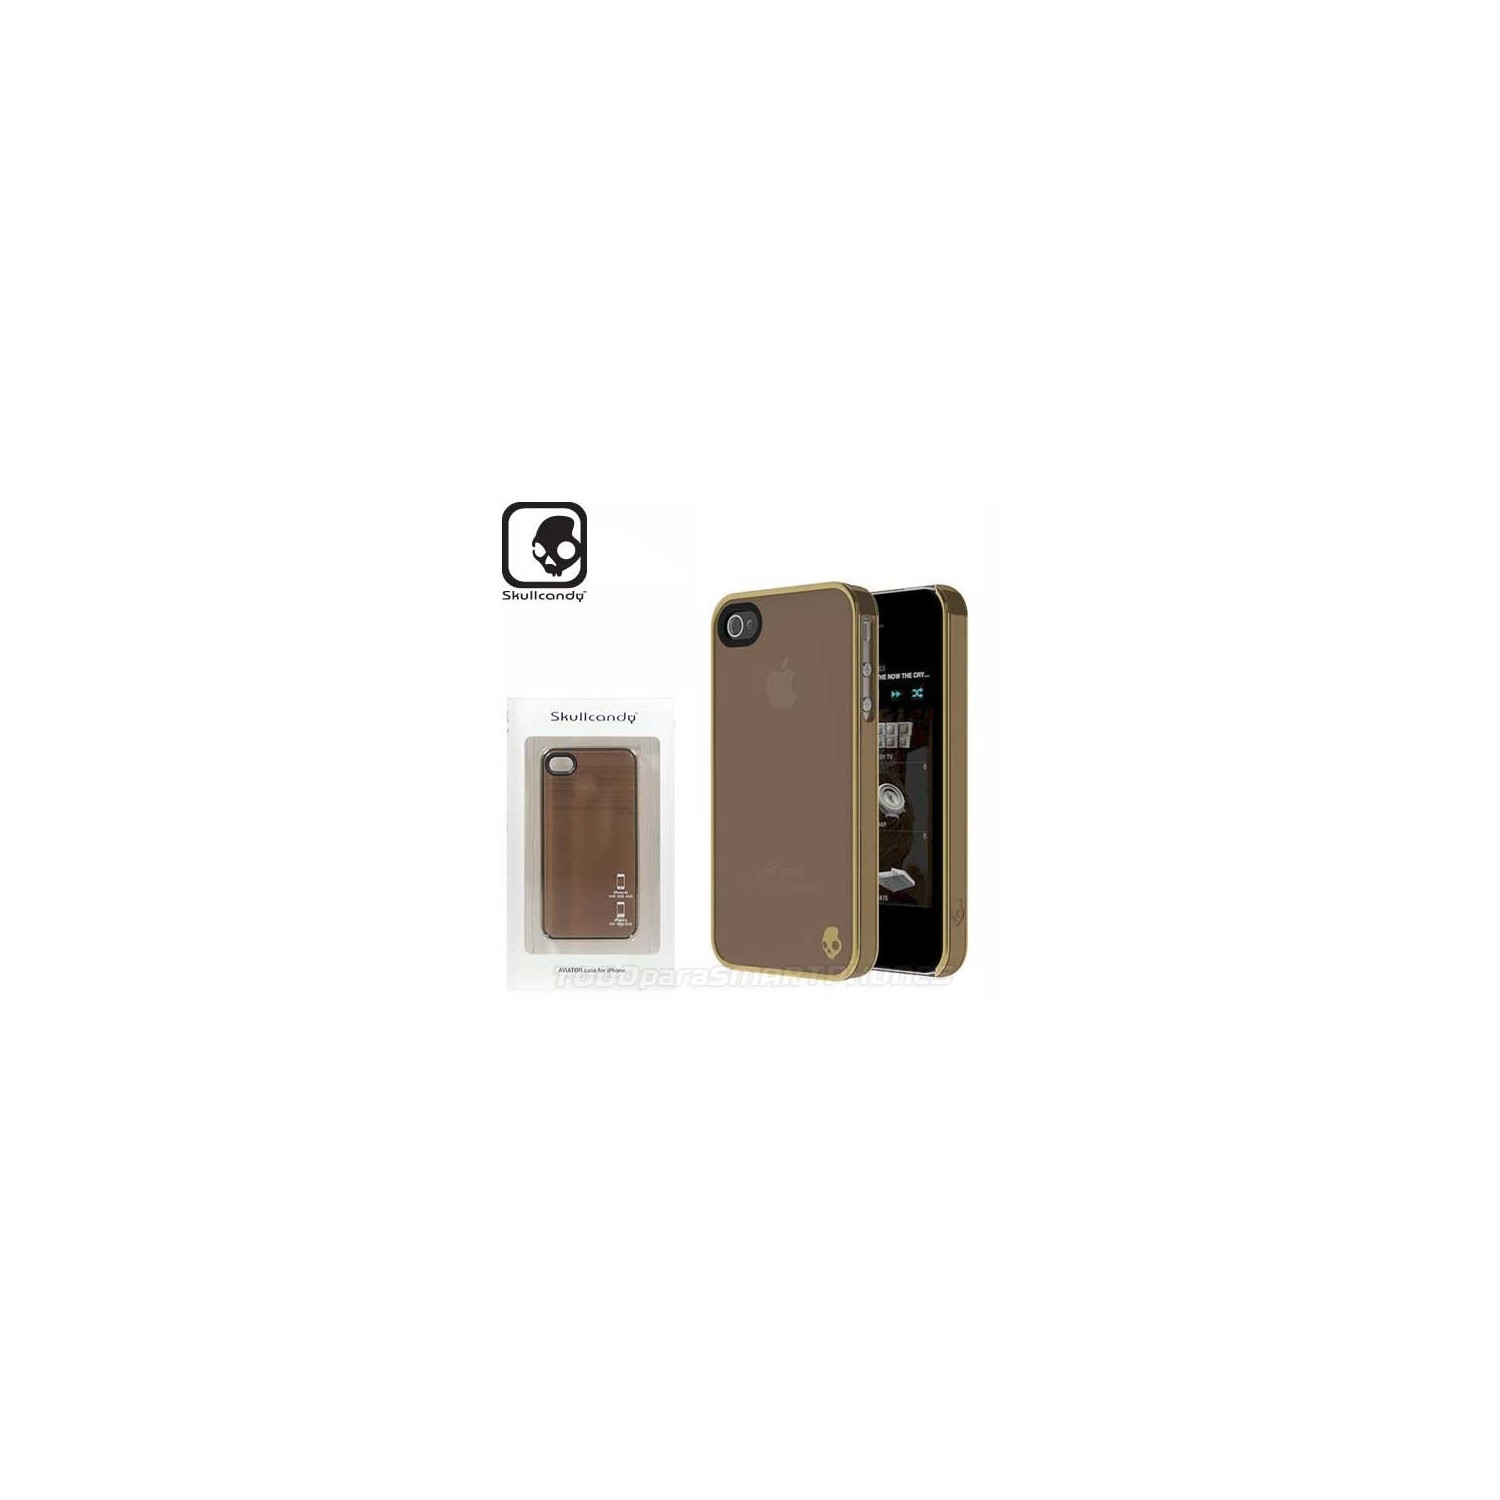 Case - Skullcandy Aviator for iPhone 4 and 4s Brown Gold